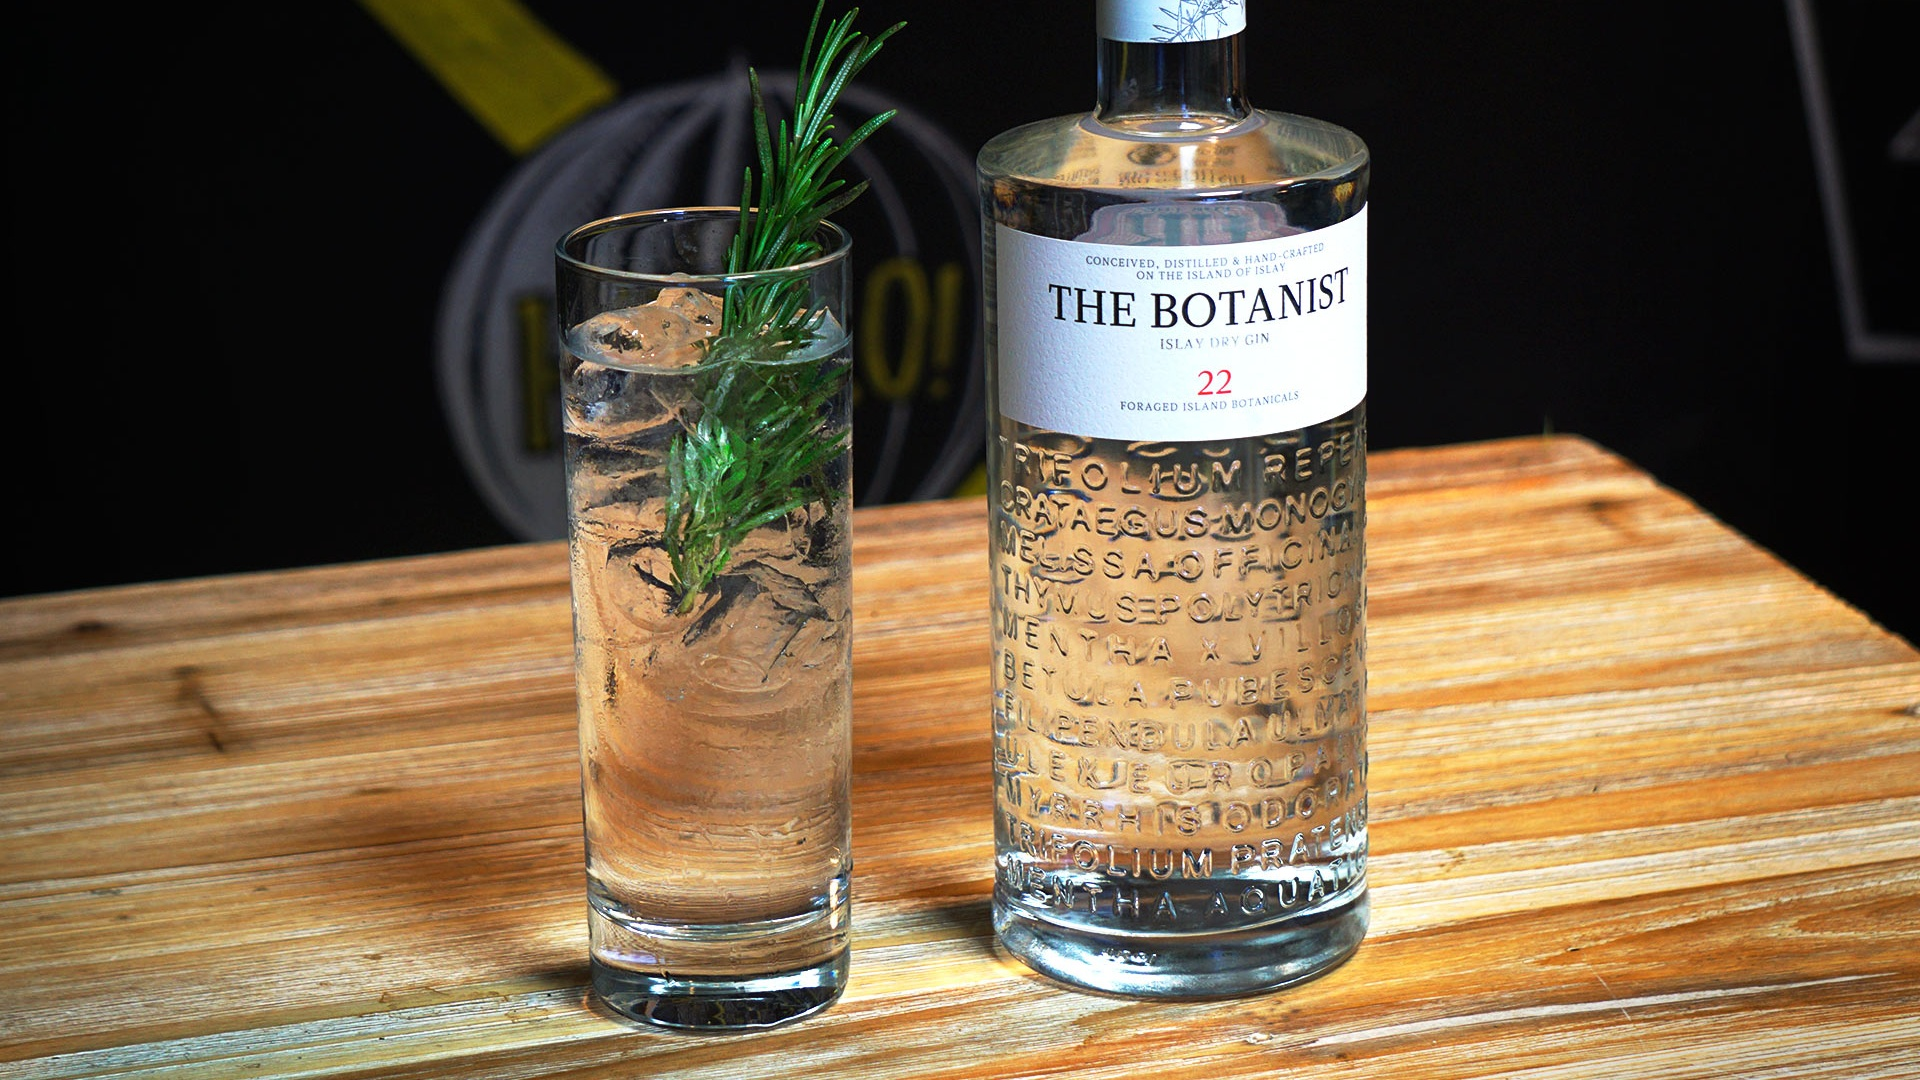 The Botanist's gin and tonic